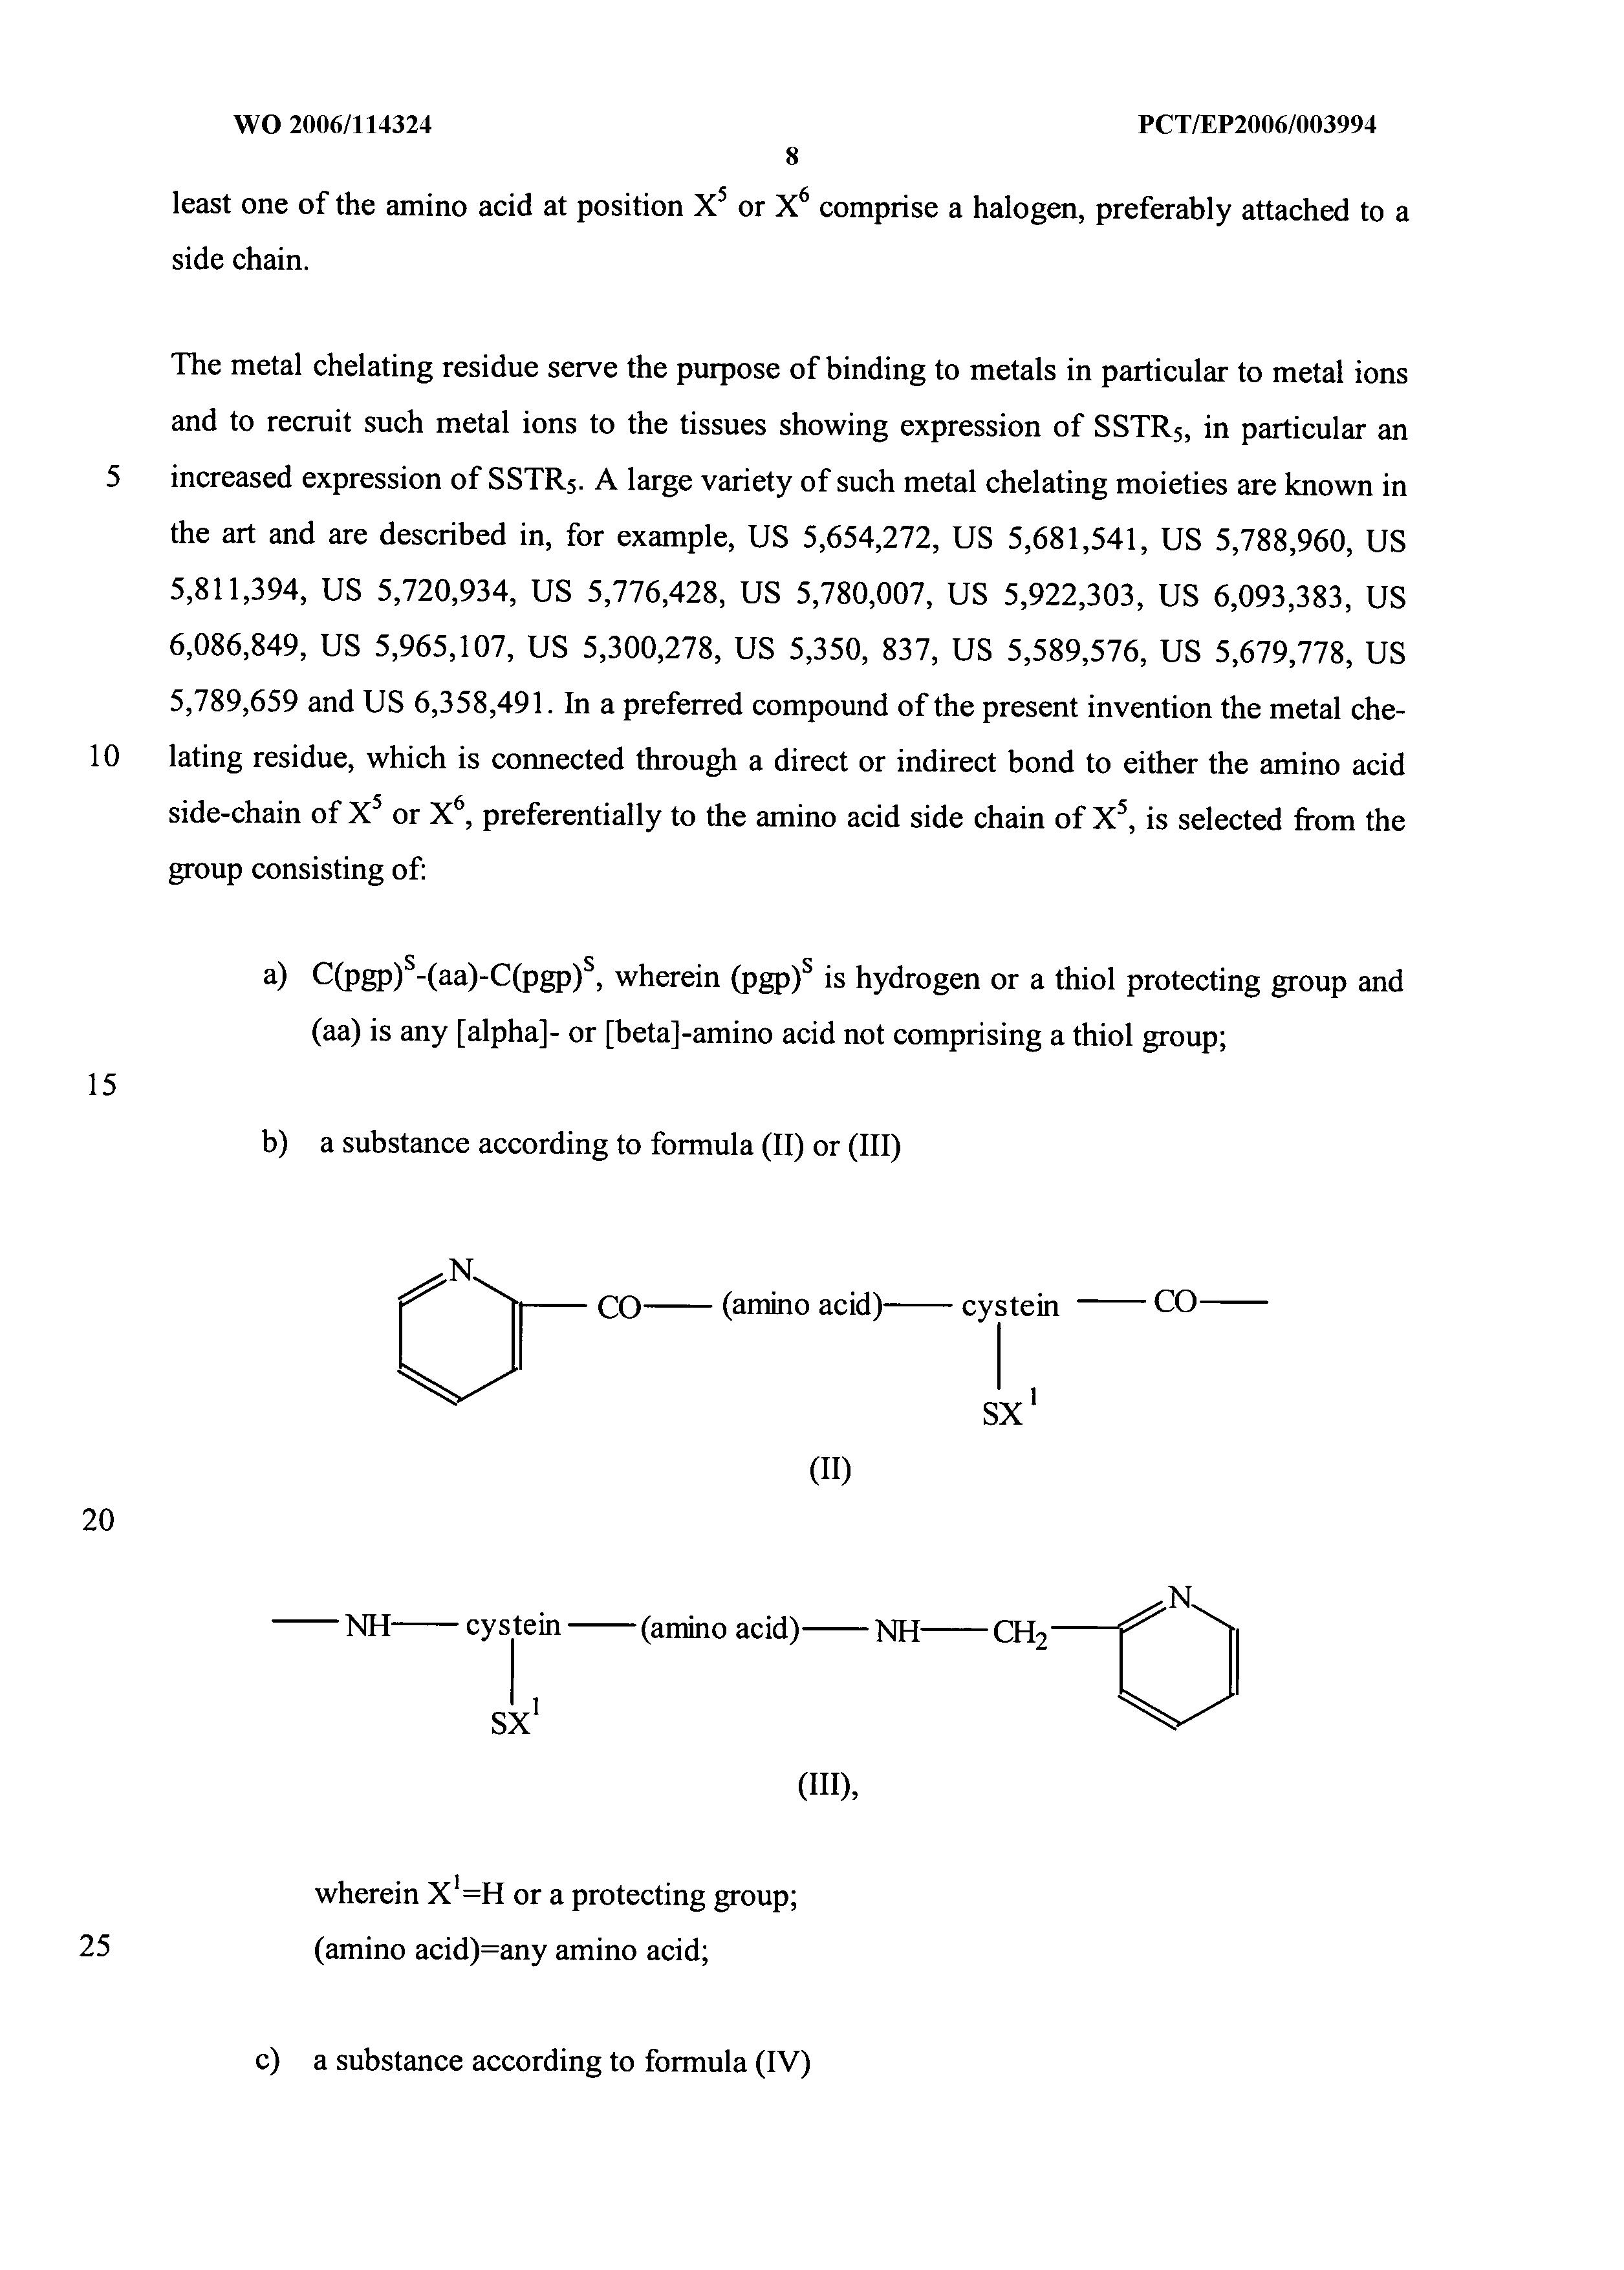 WO 2006/114324 A1 - Compounds Comprising Cyclized